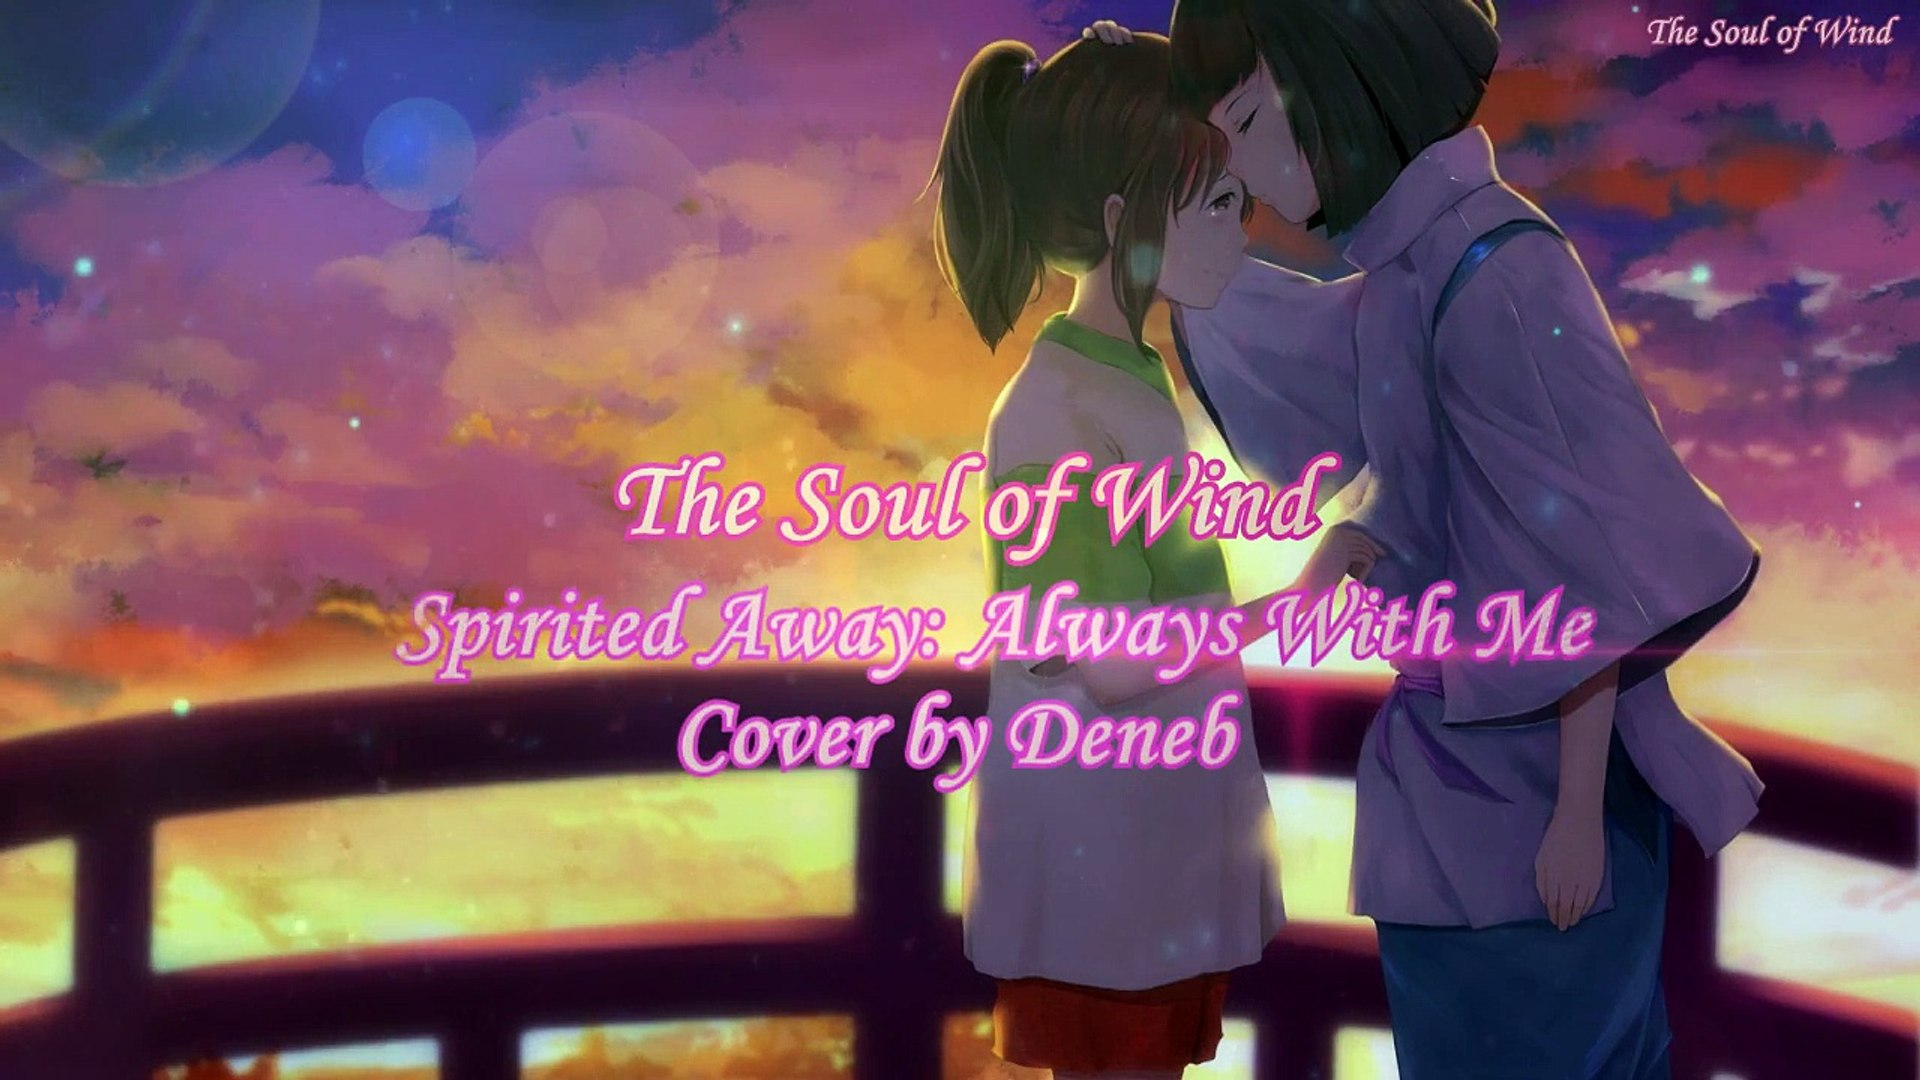 Studio Ghibli Music Spirited Away Always With Me Cover By Deneb Video Dailymotion